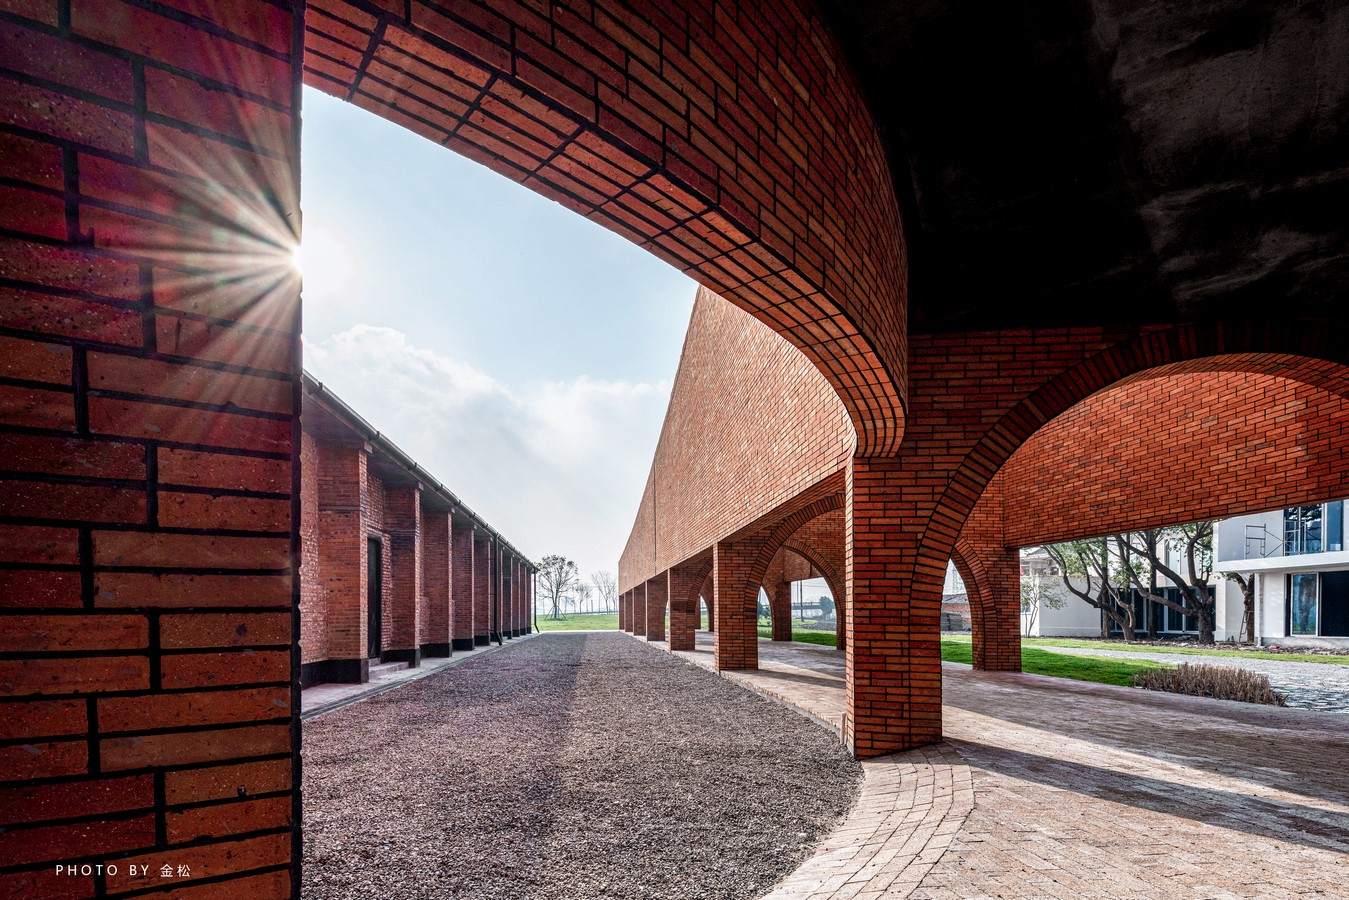 Old Granaries repurposed As An Art Centre With Flowing Brick Corridors In Jiaxing by Roarc Renew - Sheet1